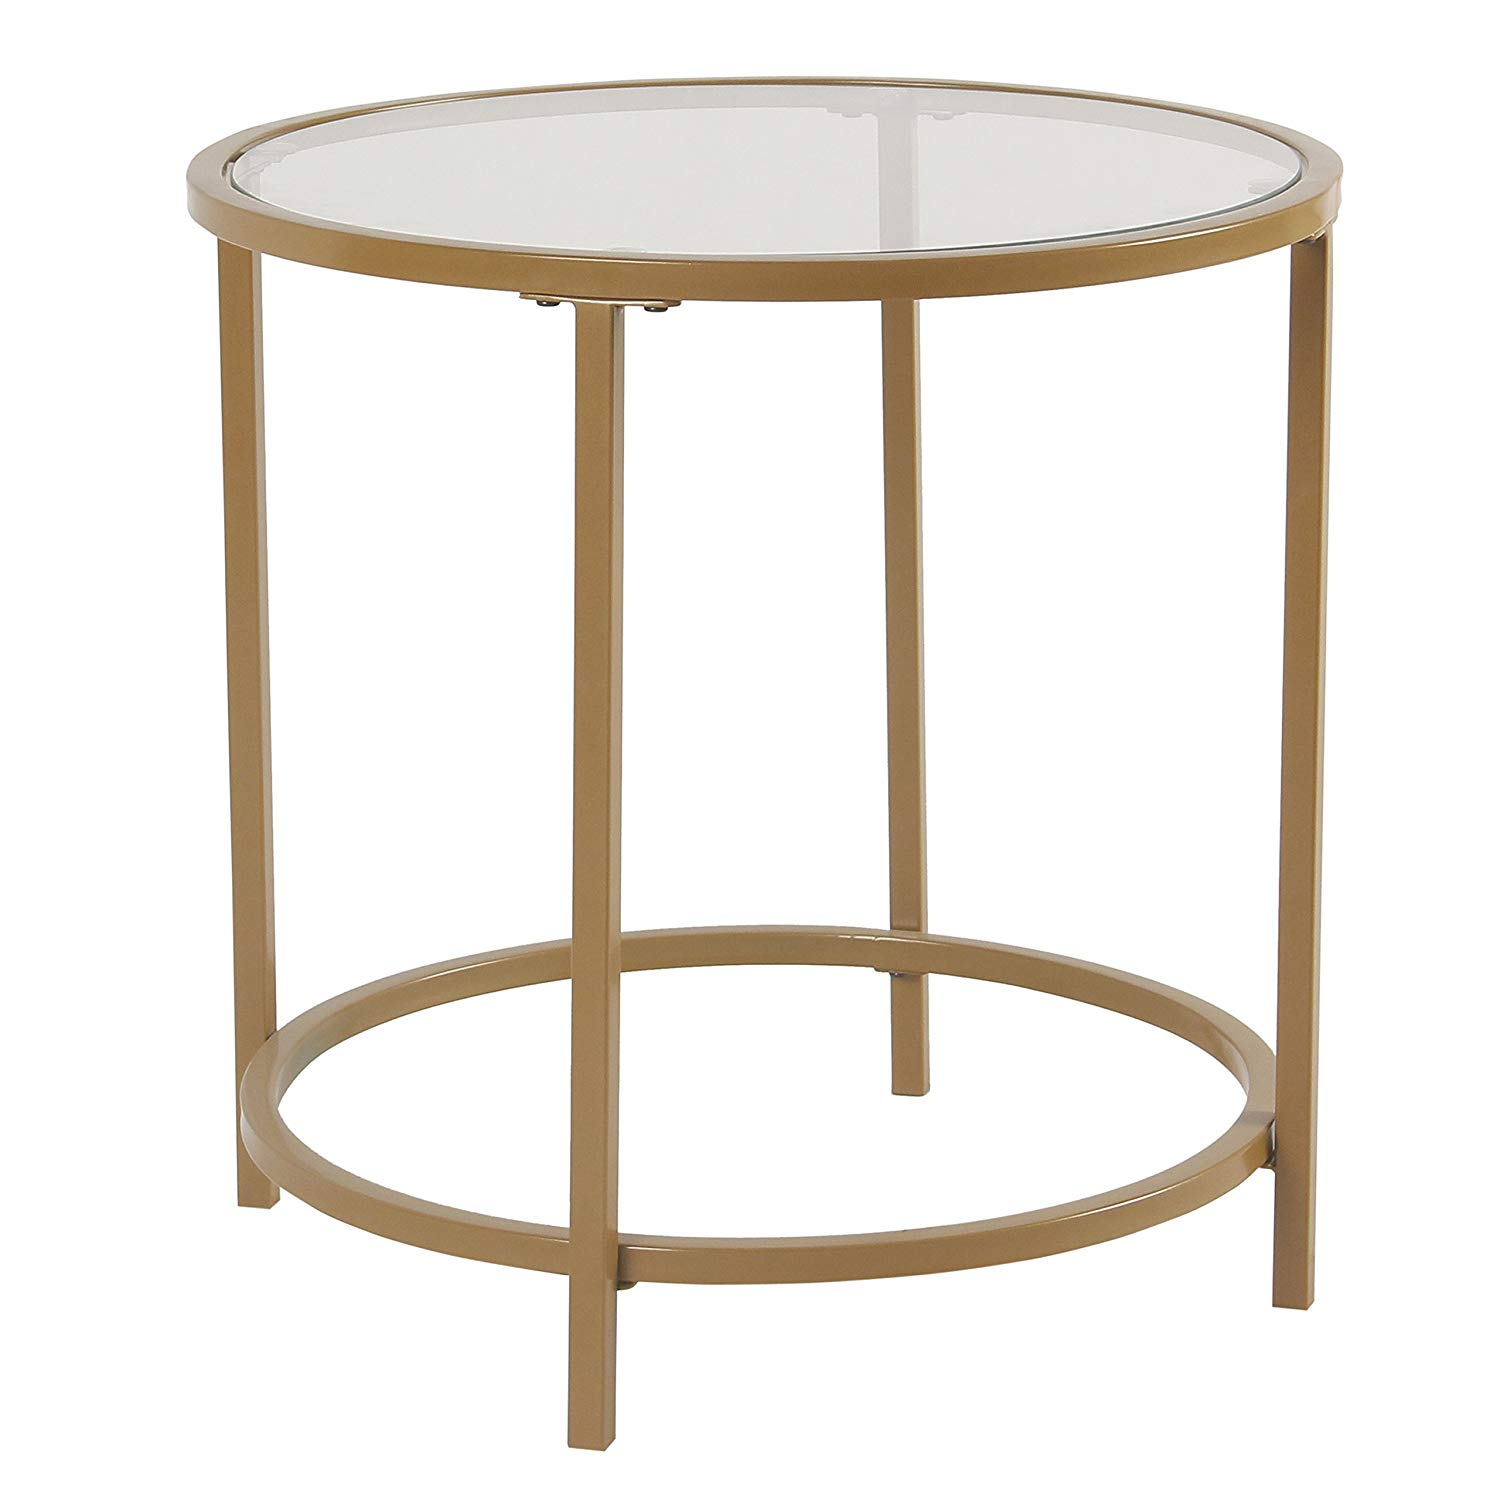 round glass accent table find get quotations spatial order metal top gold cotton tablecloth marble living room oak sideboard younger furniture essentials side inch console dorm